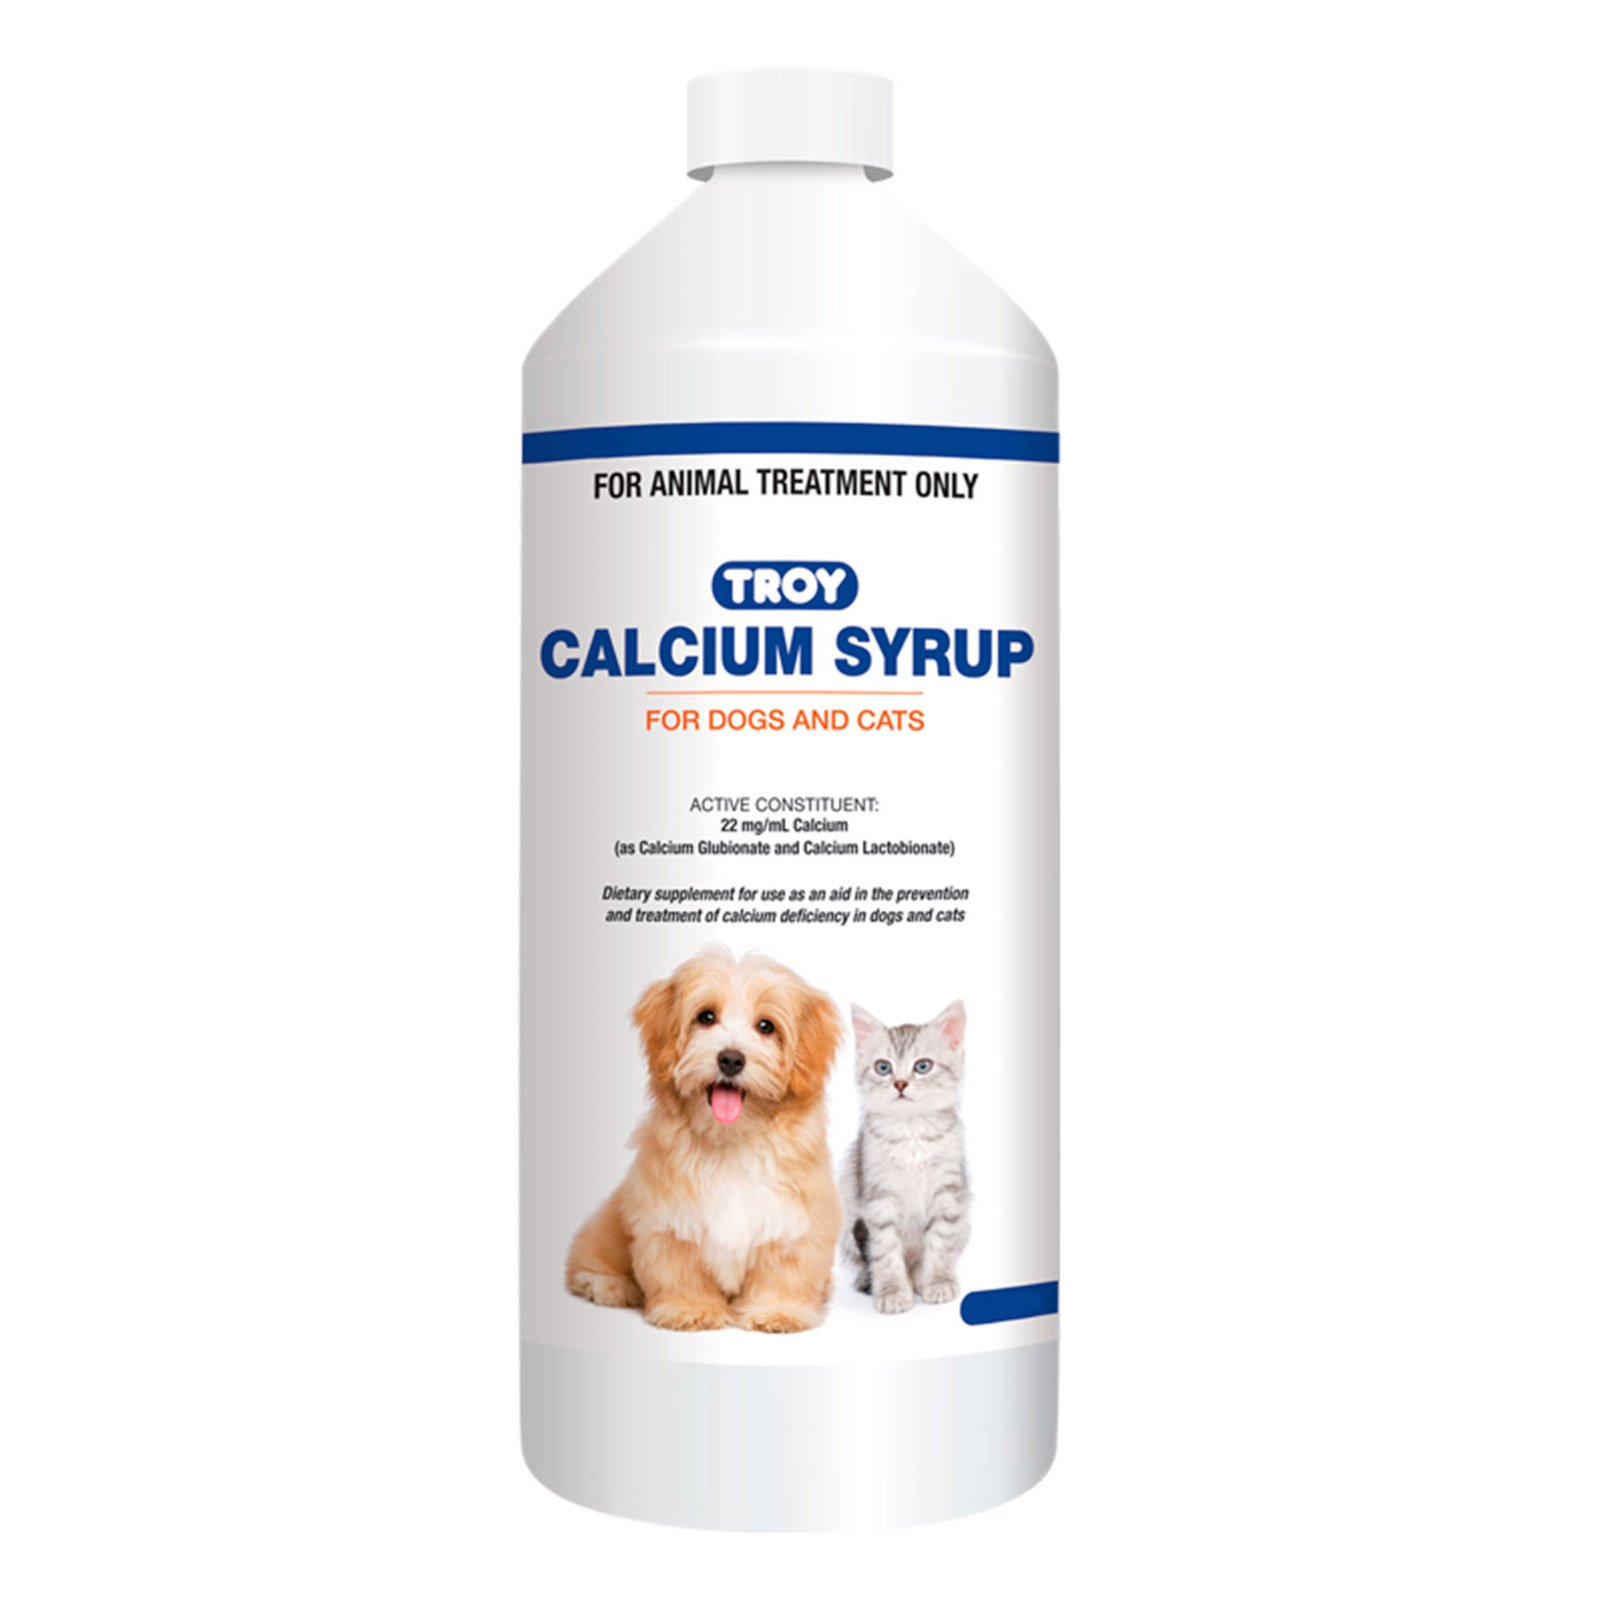 Troy Calcium Syrup